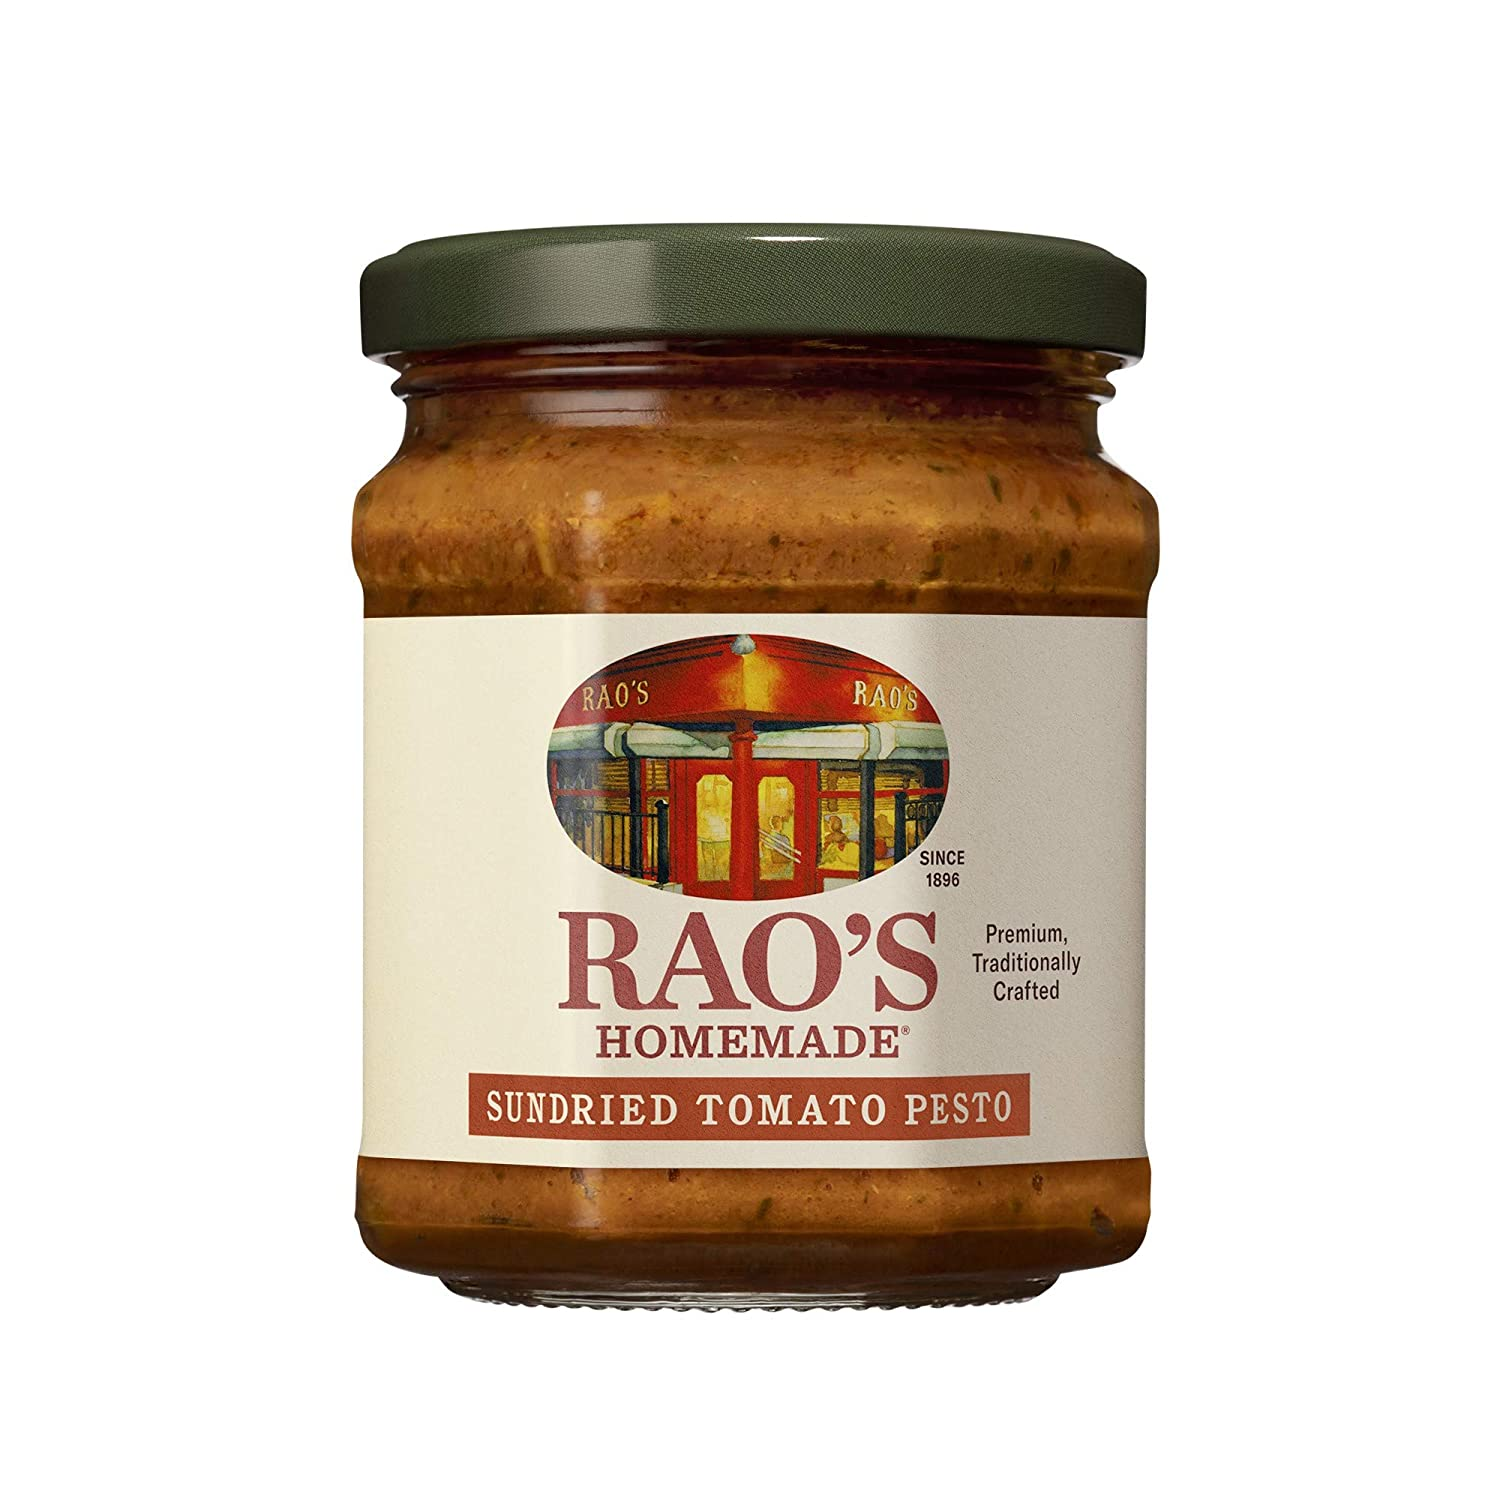 Rao's Homemade Sundried Tomato Pesto Sauce   6.7 oz   Premium Quality   Made With Sun Dried Tomatoes, Tomato Pulp, Oil, Cheese & Nuts